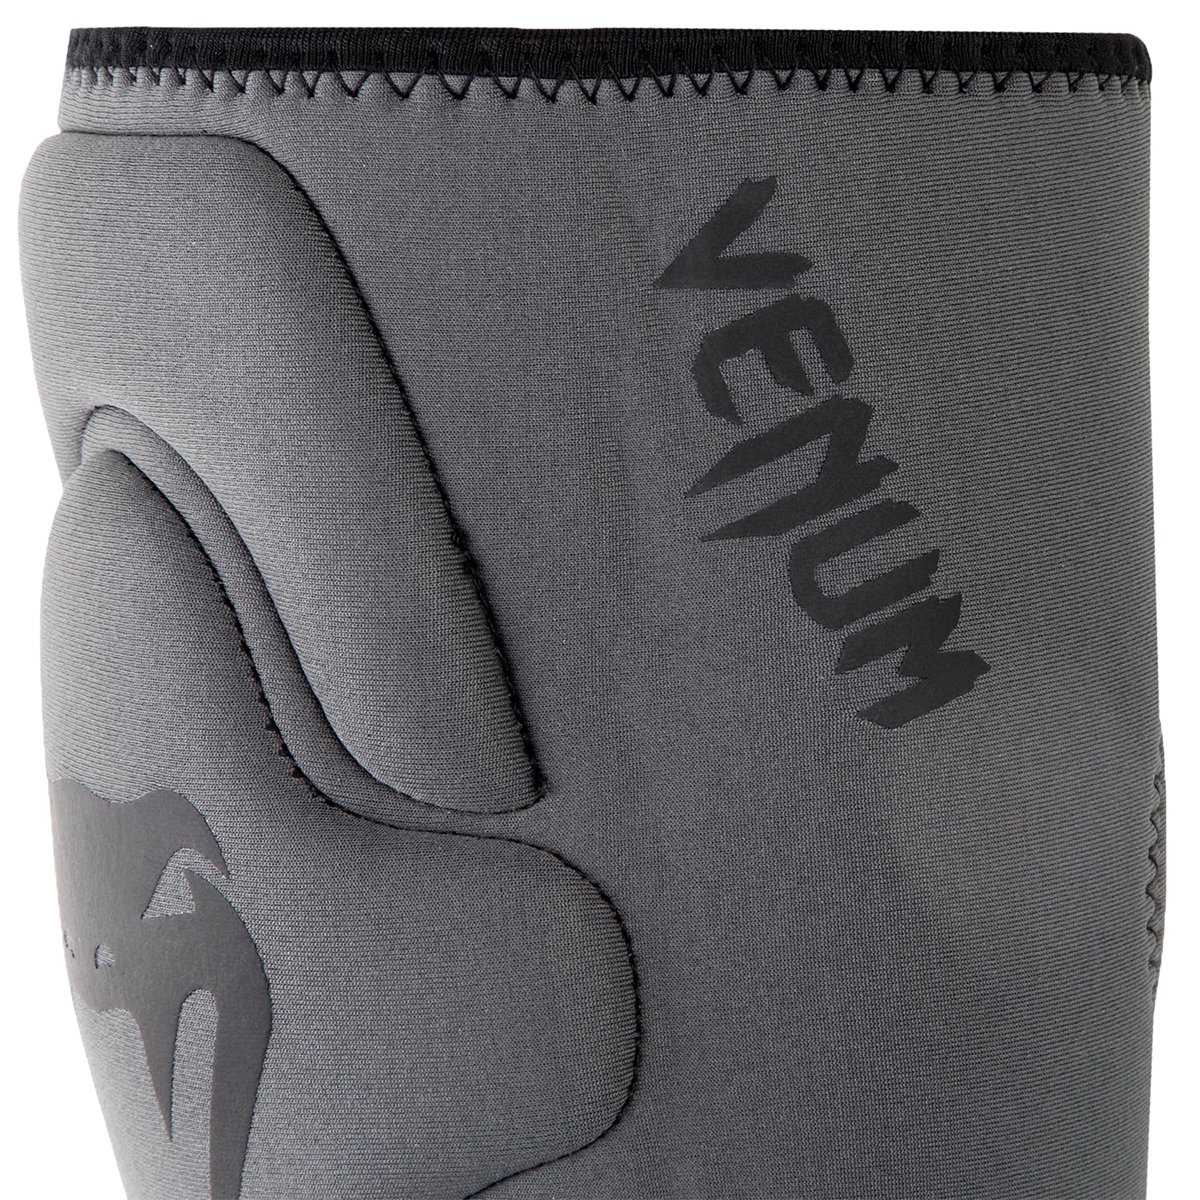 thumbnail 15 - Venum-Kontact-Gel-Shock-System-Protective-MMA-Training-Knee-Pads